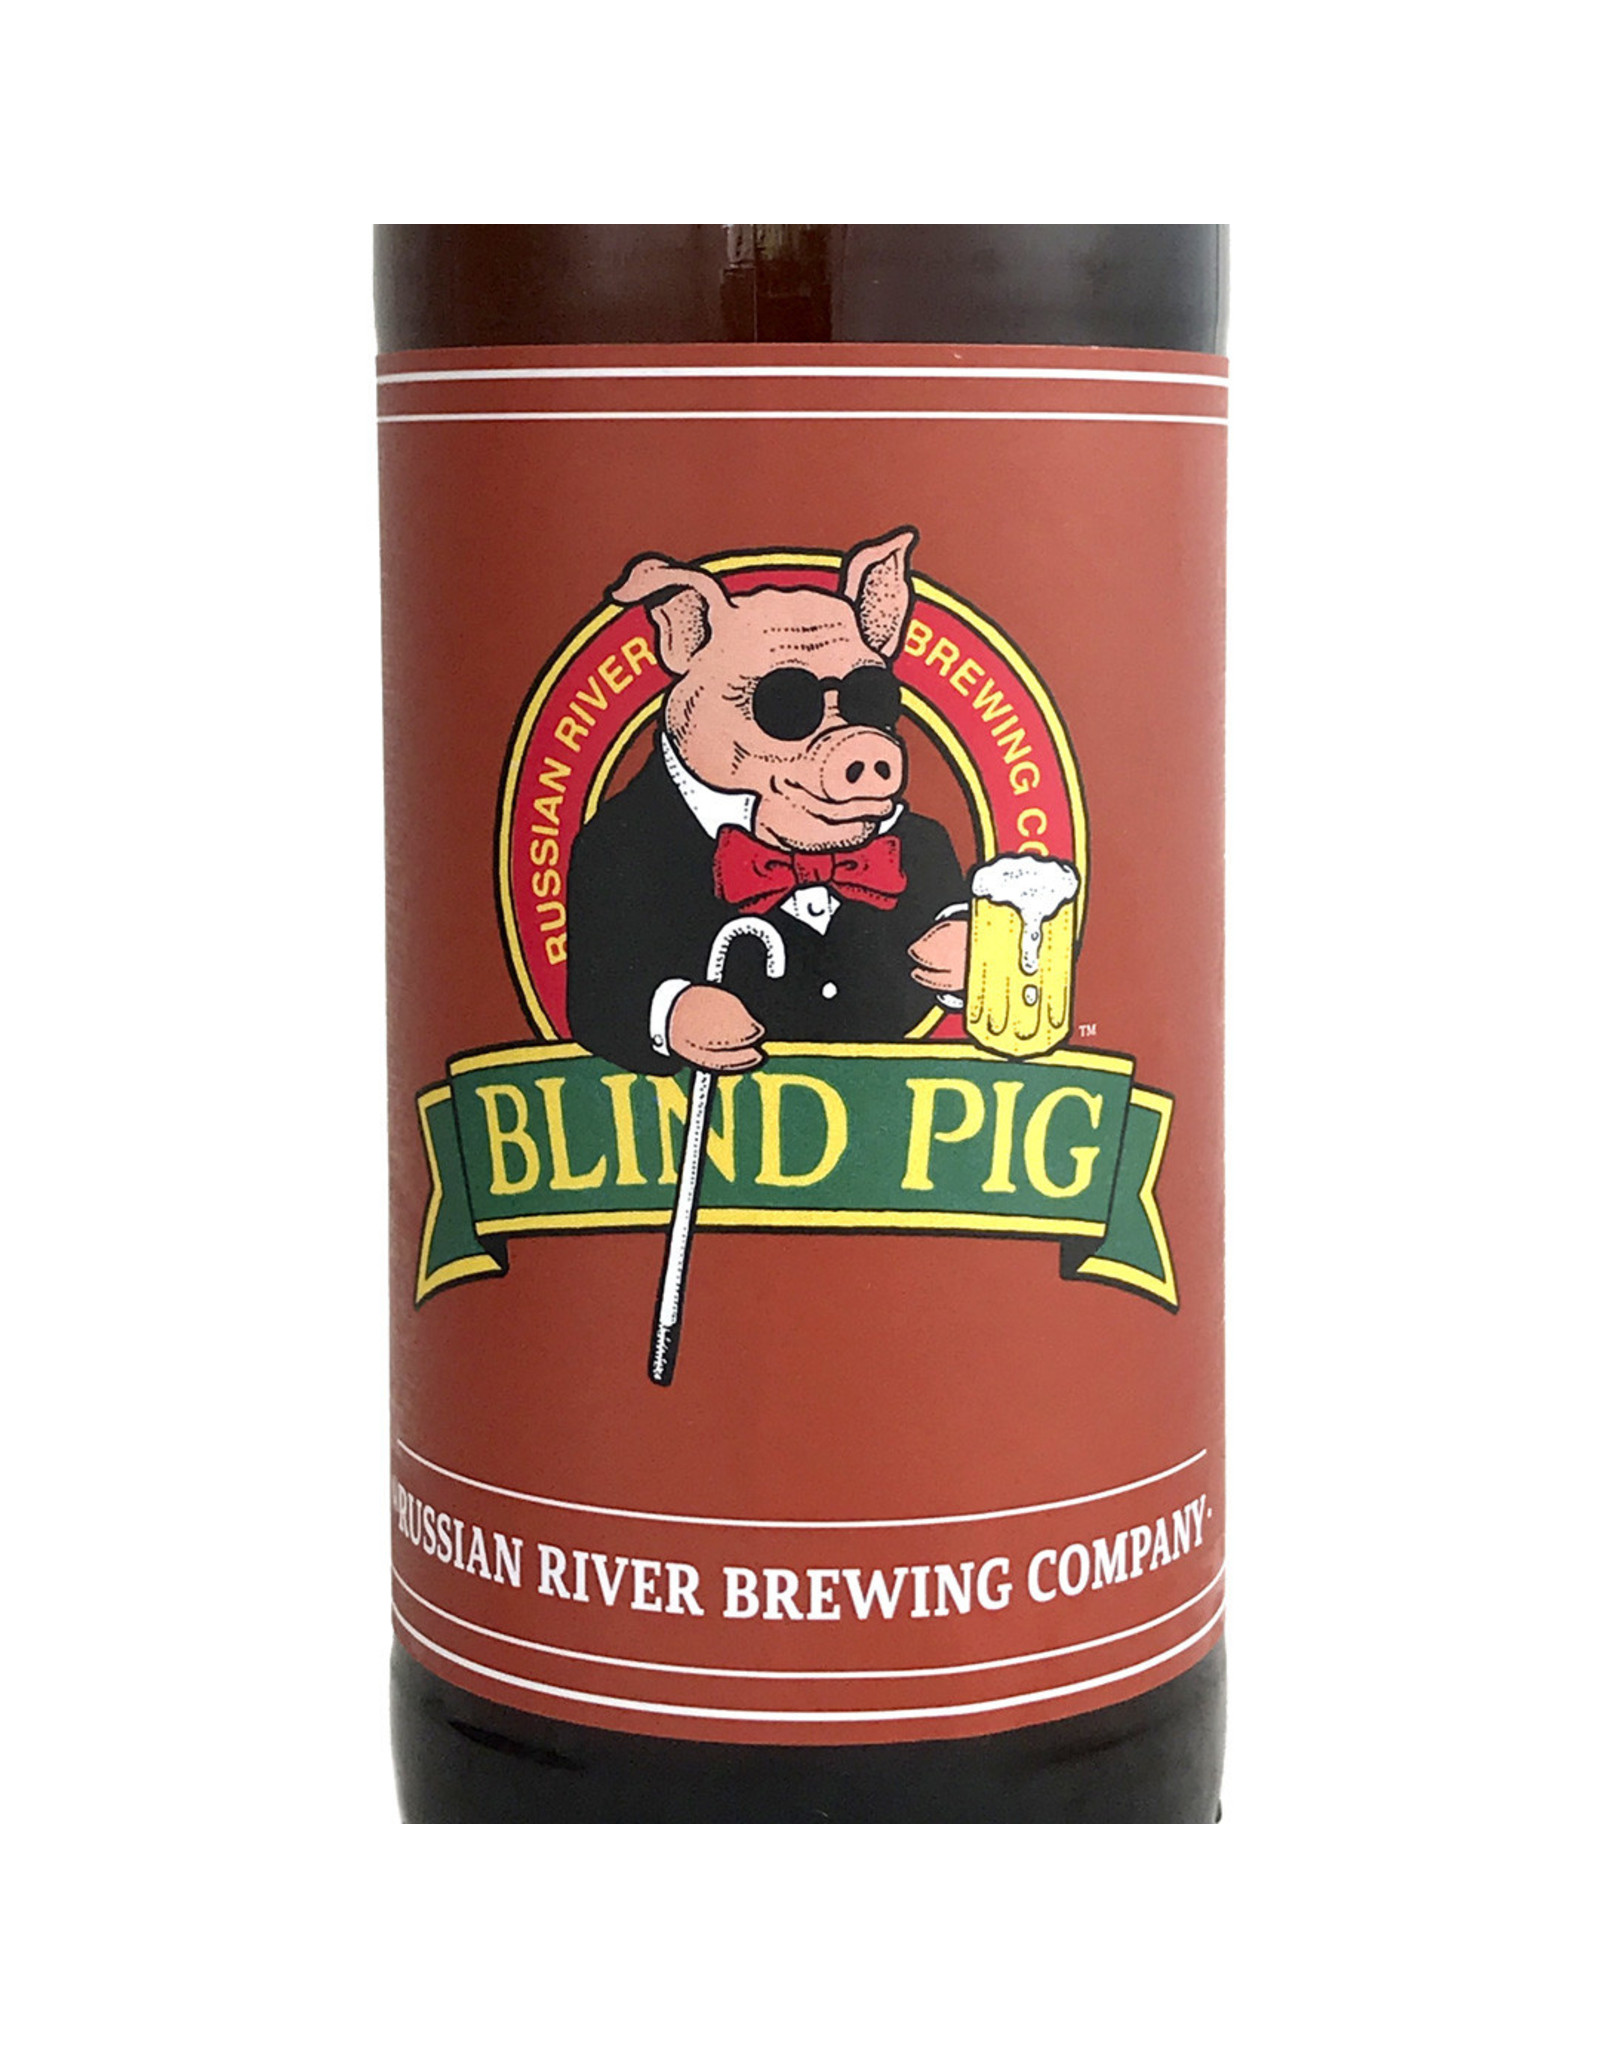 Russian River Brewing Company Russian River Beer Blind Pig IPA